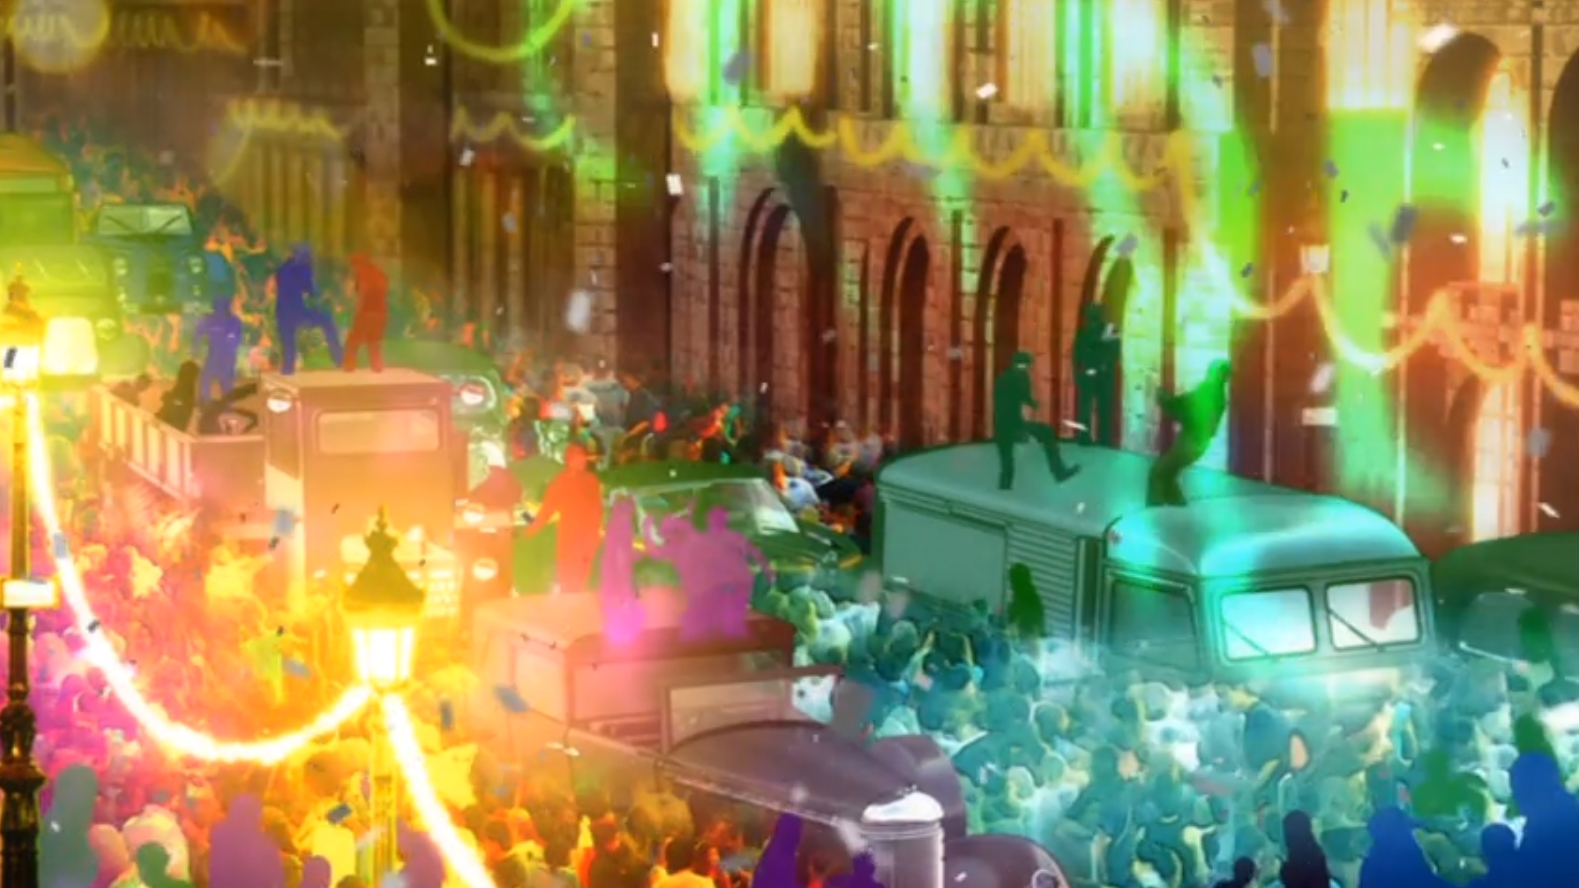 Outside image of a festival in crowded streets.  The mix of lighting and color showcases Gankutsuou's surreal animation.